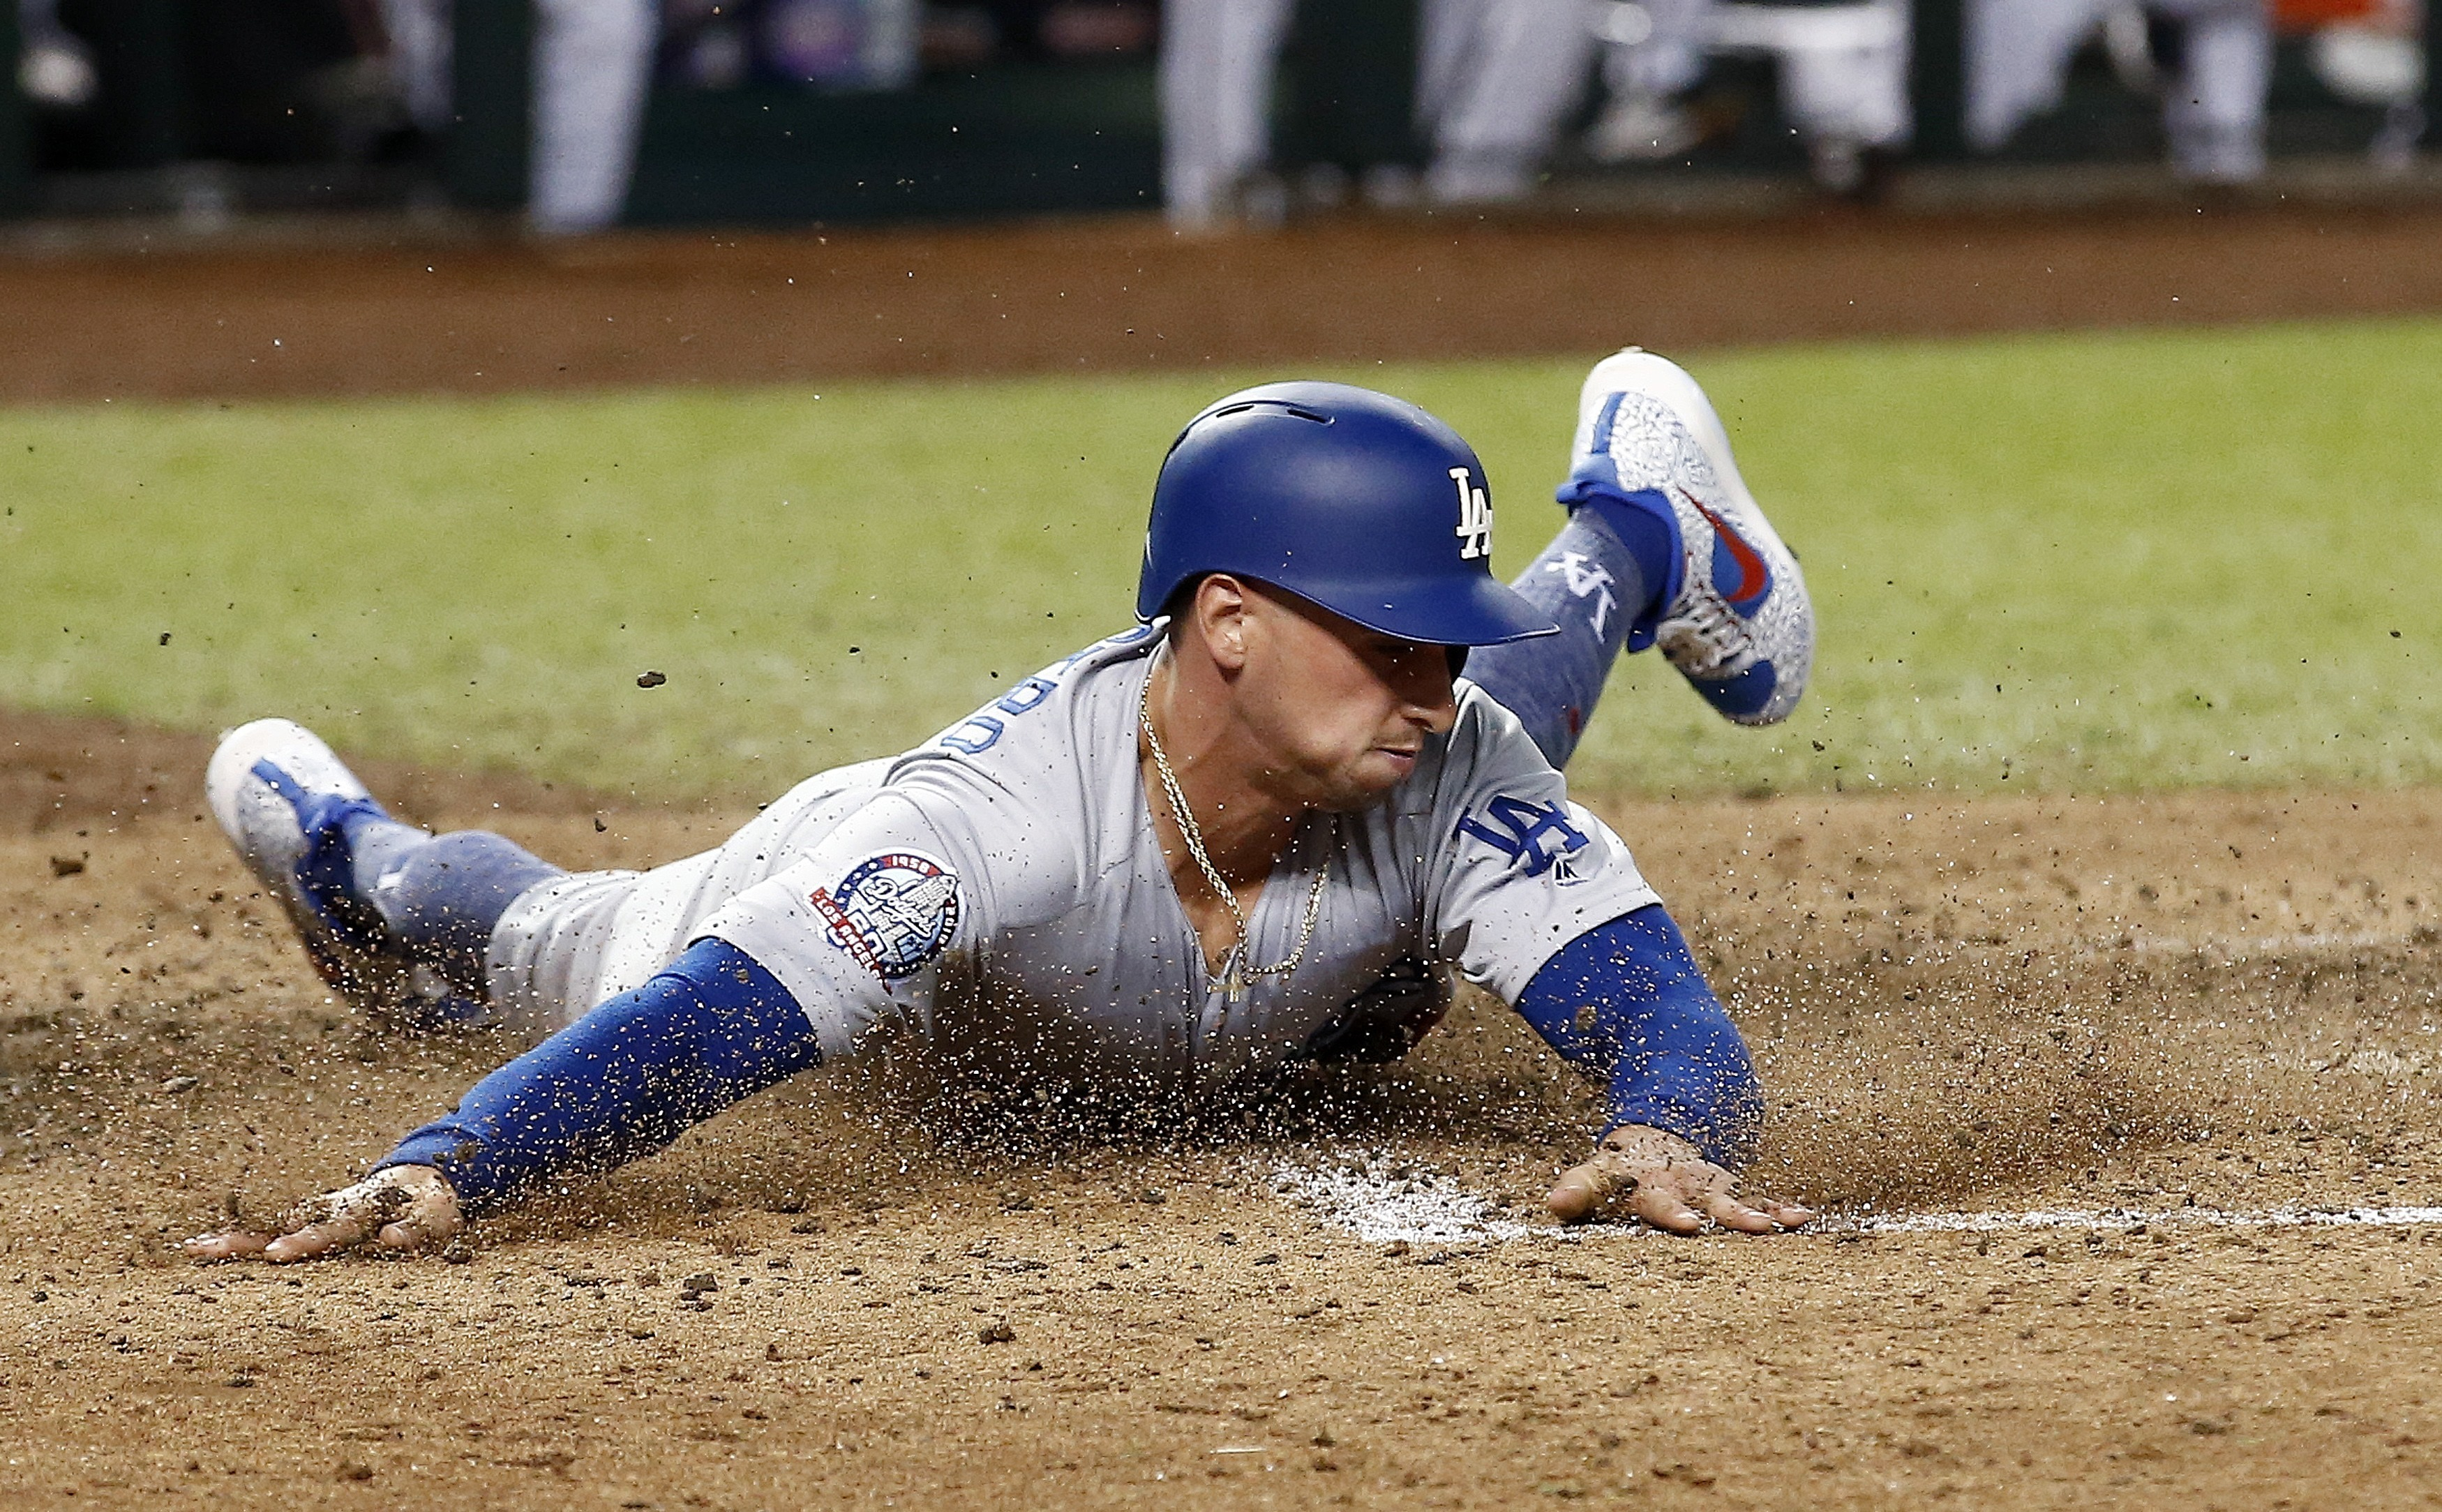 Yanks acquire Locastro from Dodgers for minor leaguer